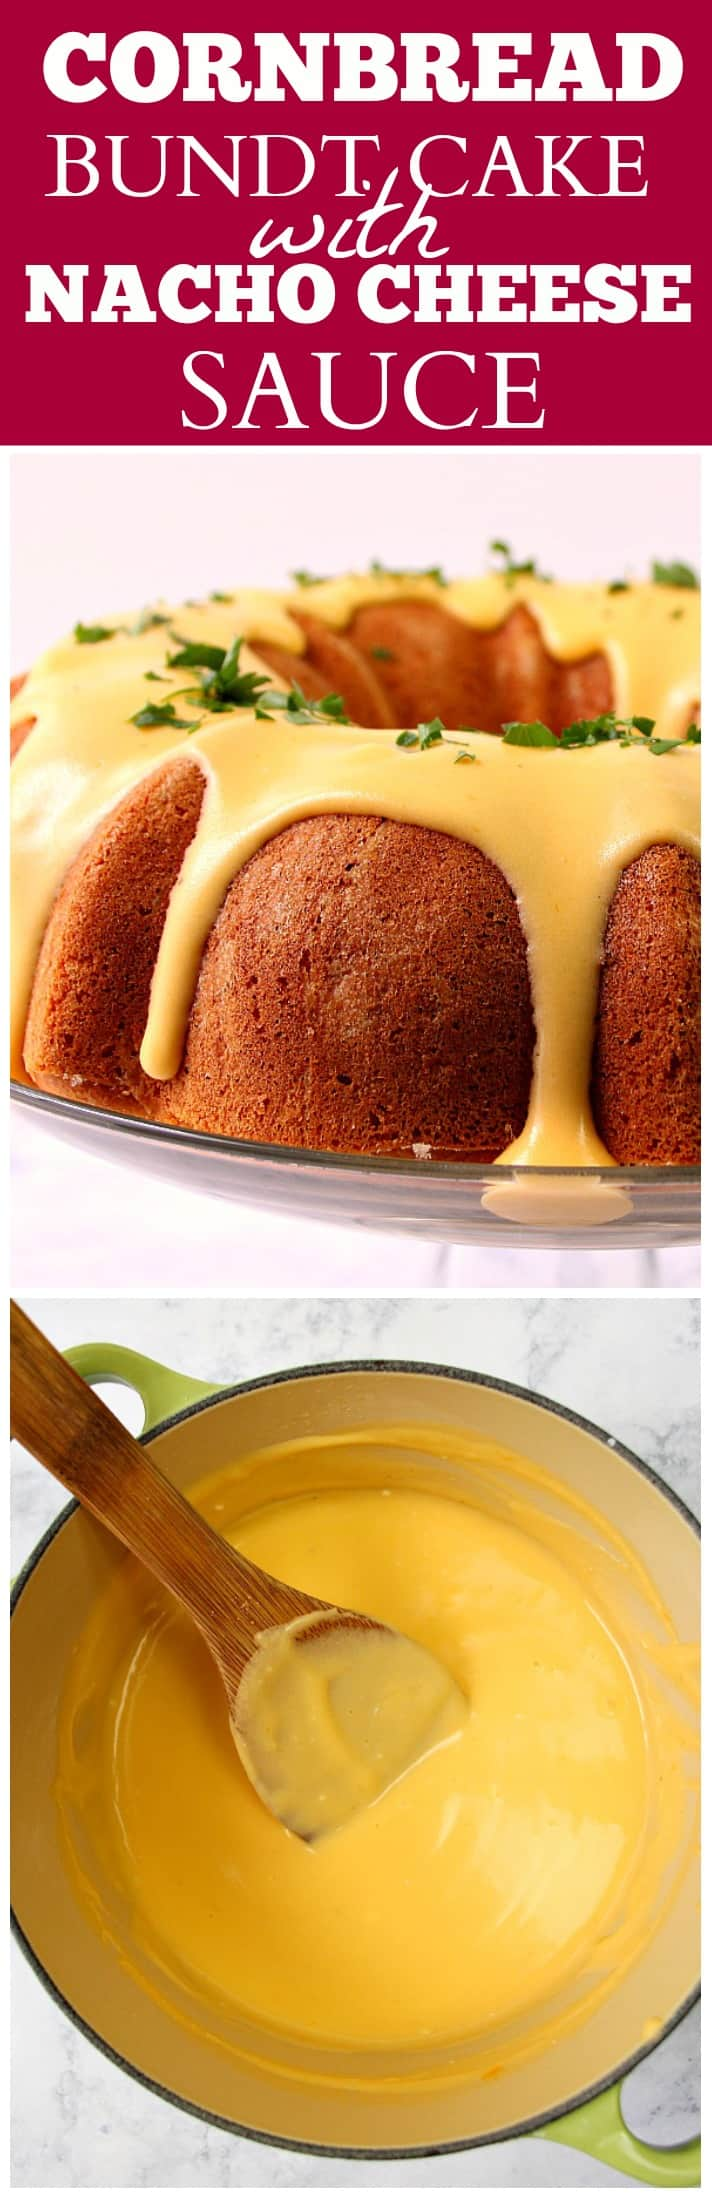 cornbread bundt cake with nacho cheese sauce recipe long Cornbread Bundt Cake with Nacho Cheese Sauce Recipe